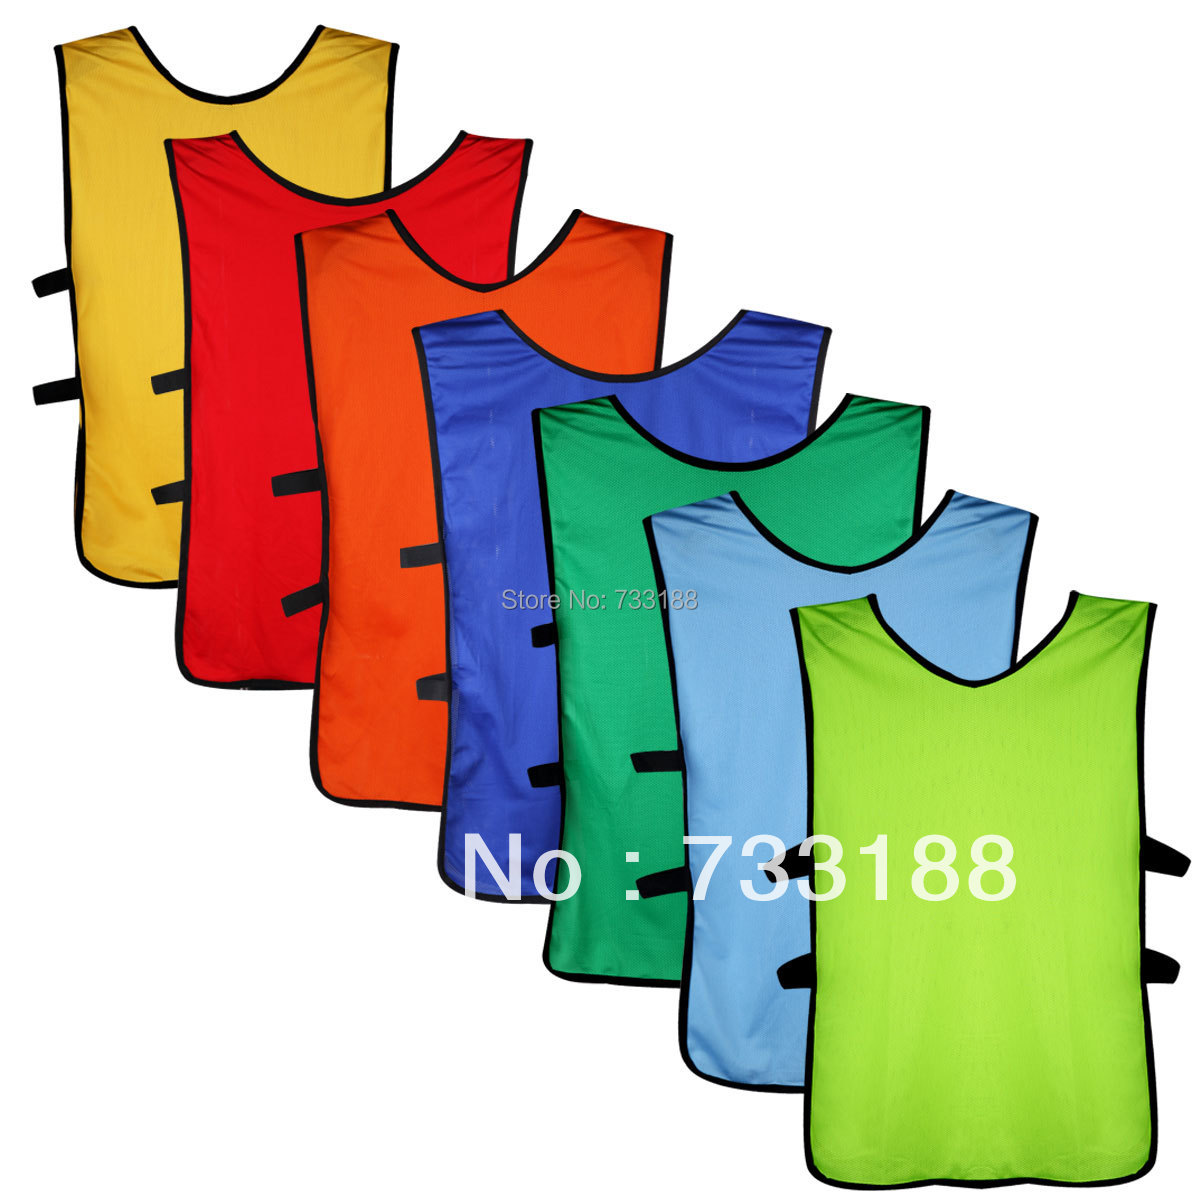 Soccer Football basketball Shirt Lacrosse MENS Scrimmage Training Vests yellow red green blue orange O-192(China (Mainland))